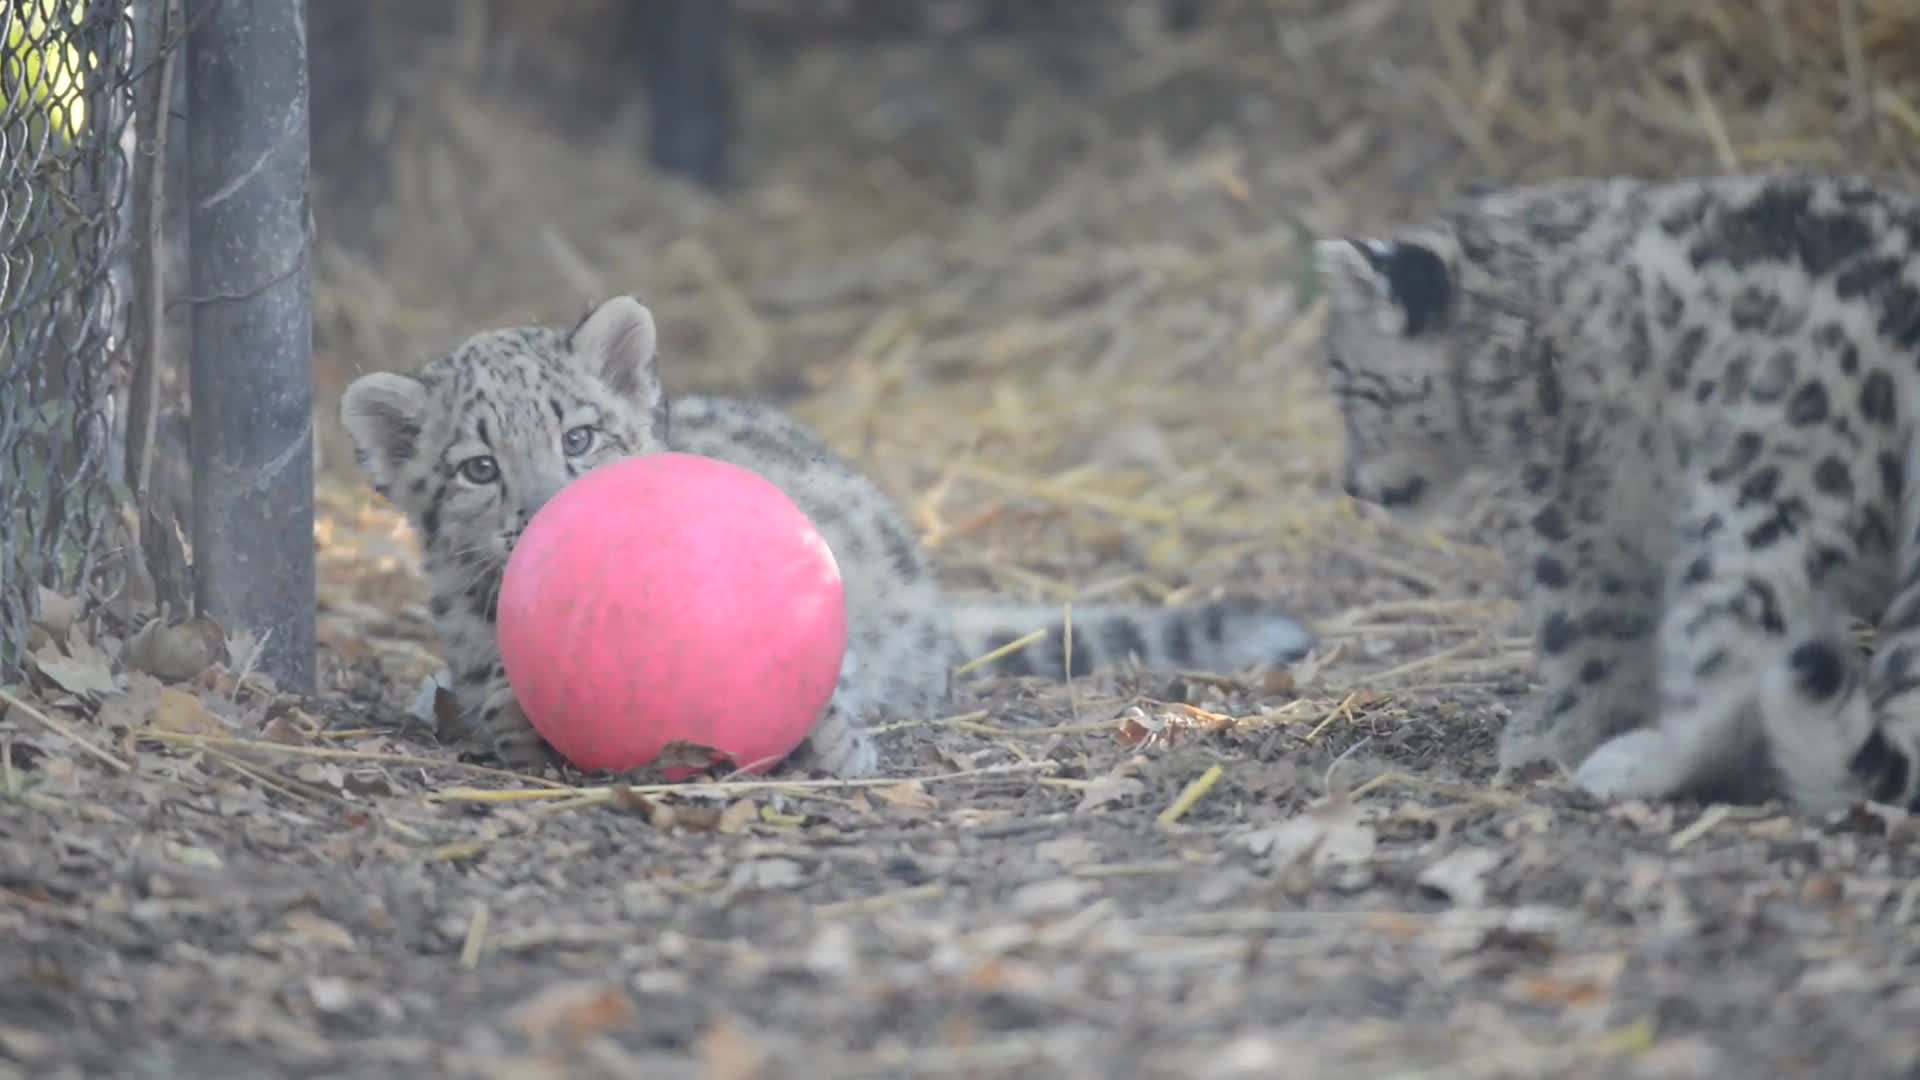 Snow Leopard Kittens and a Pink Ball GIFs